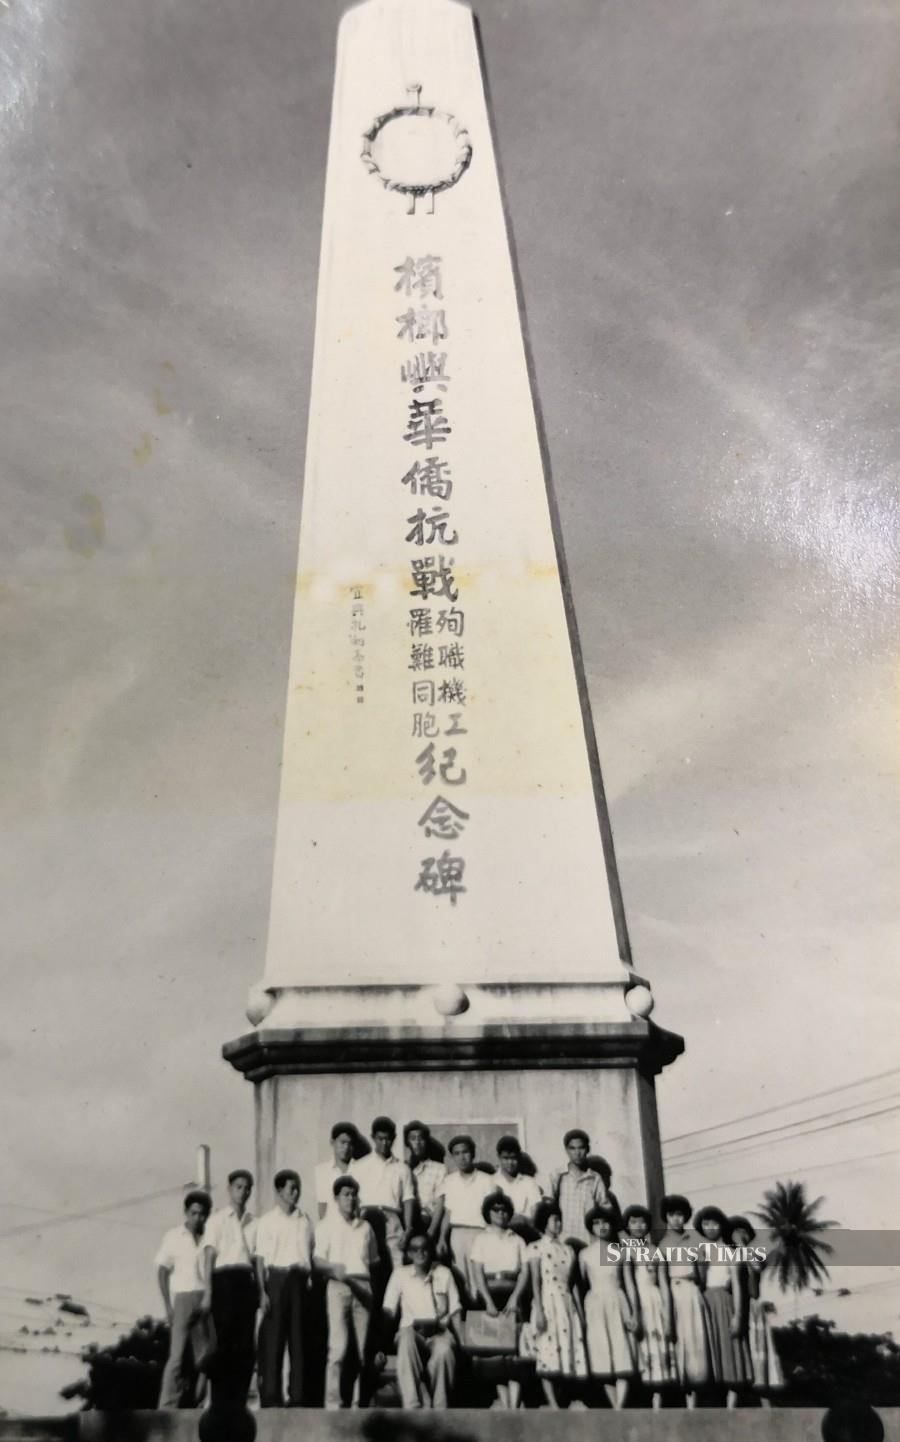 We should build memorials, like this one in Penang, to remember Malayans who lost their lives during the Japanese Occupation.